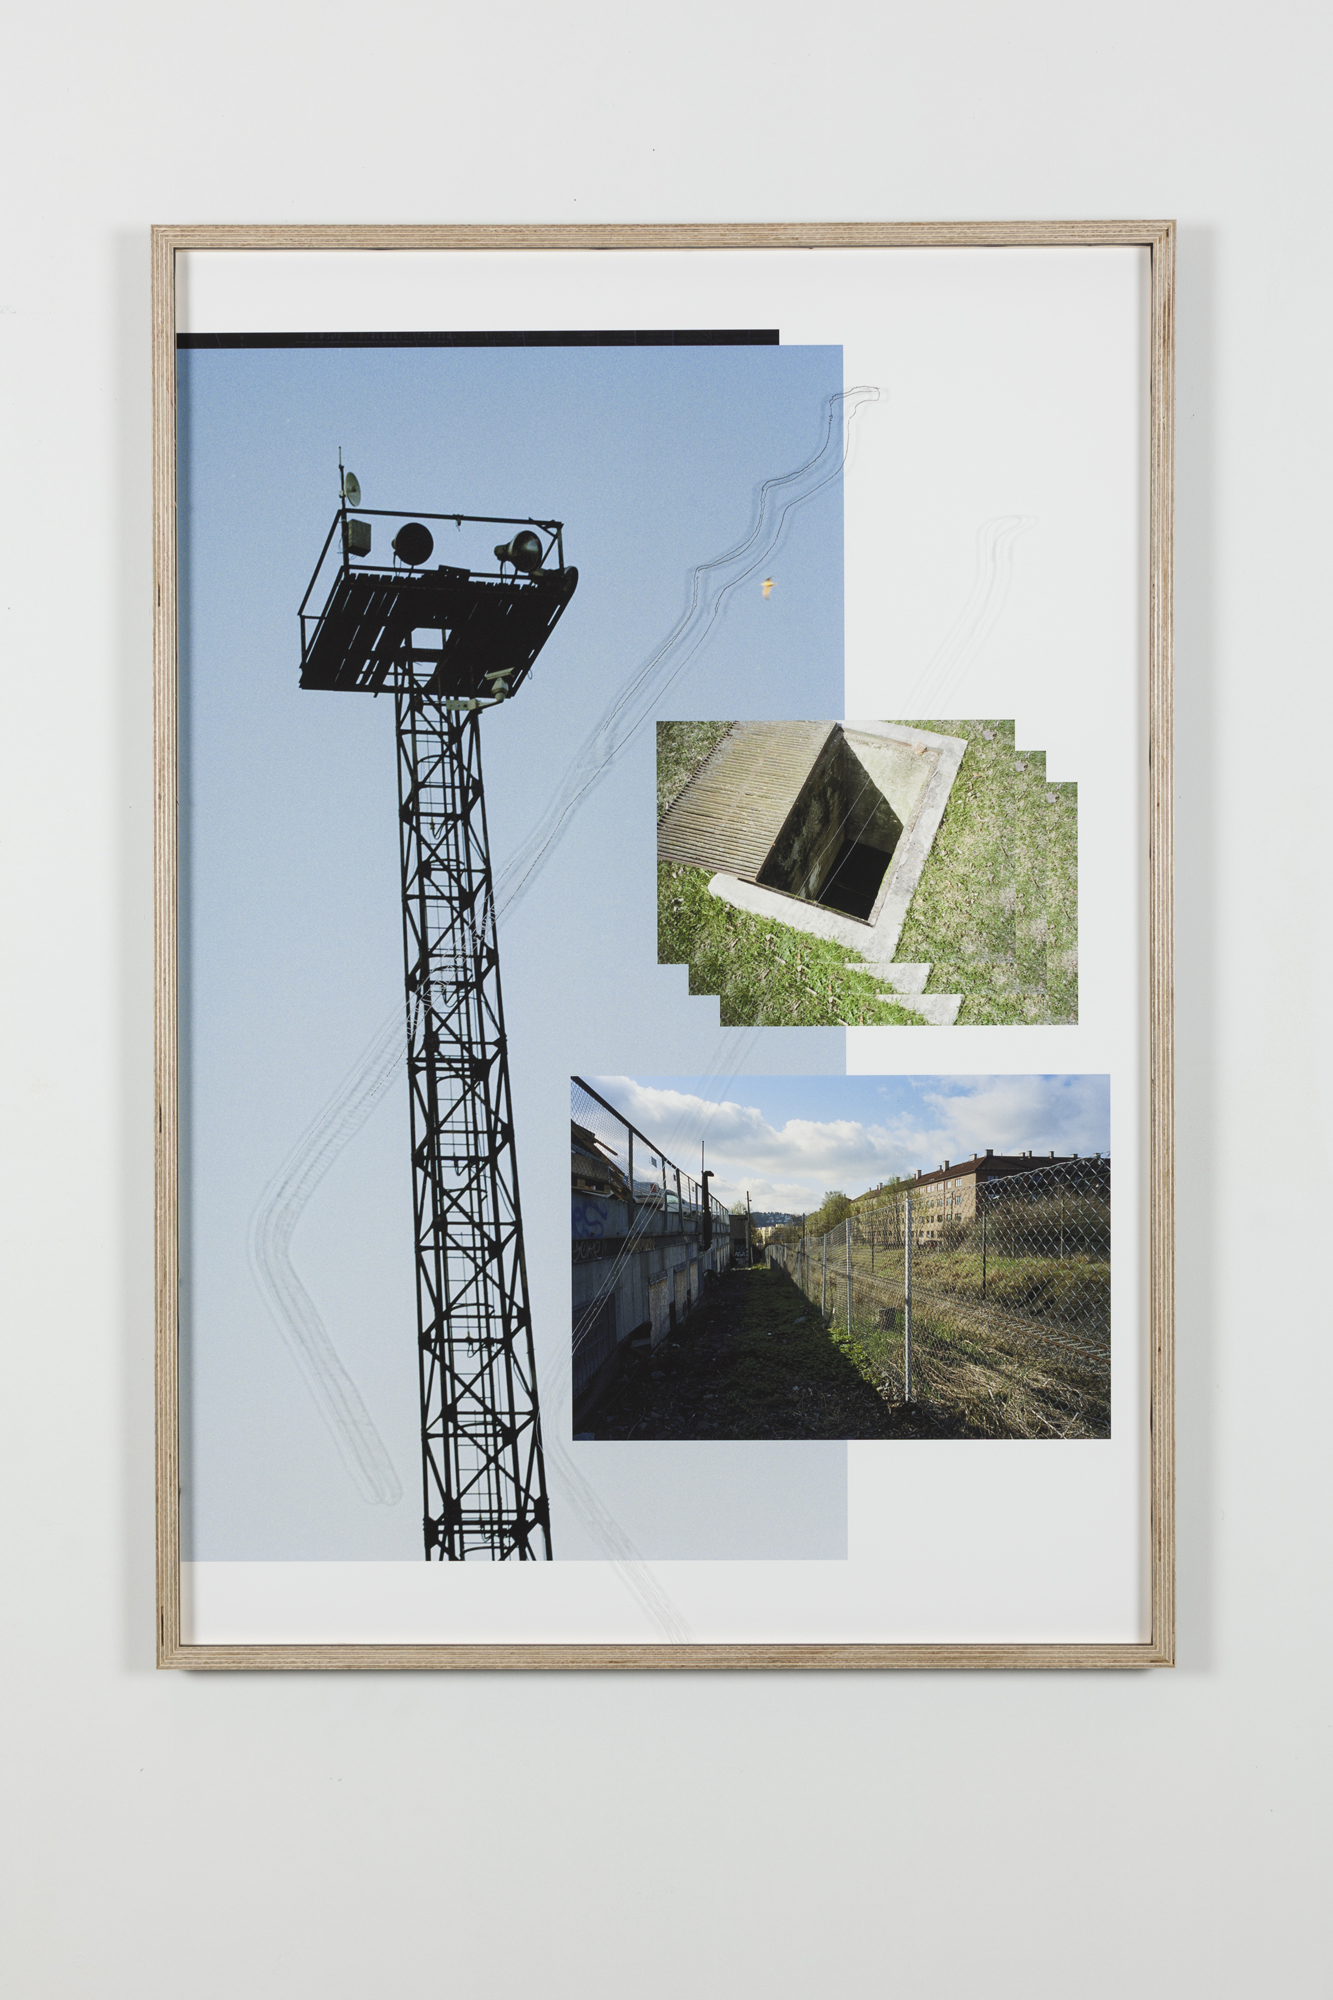 Jon Benjamin Tallerås, Untitled (Lock Picking is Key) I, 2019, inkjet print, scratched ar-glass, artist made frame, 63 x 90 cm, unique